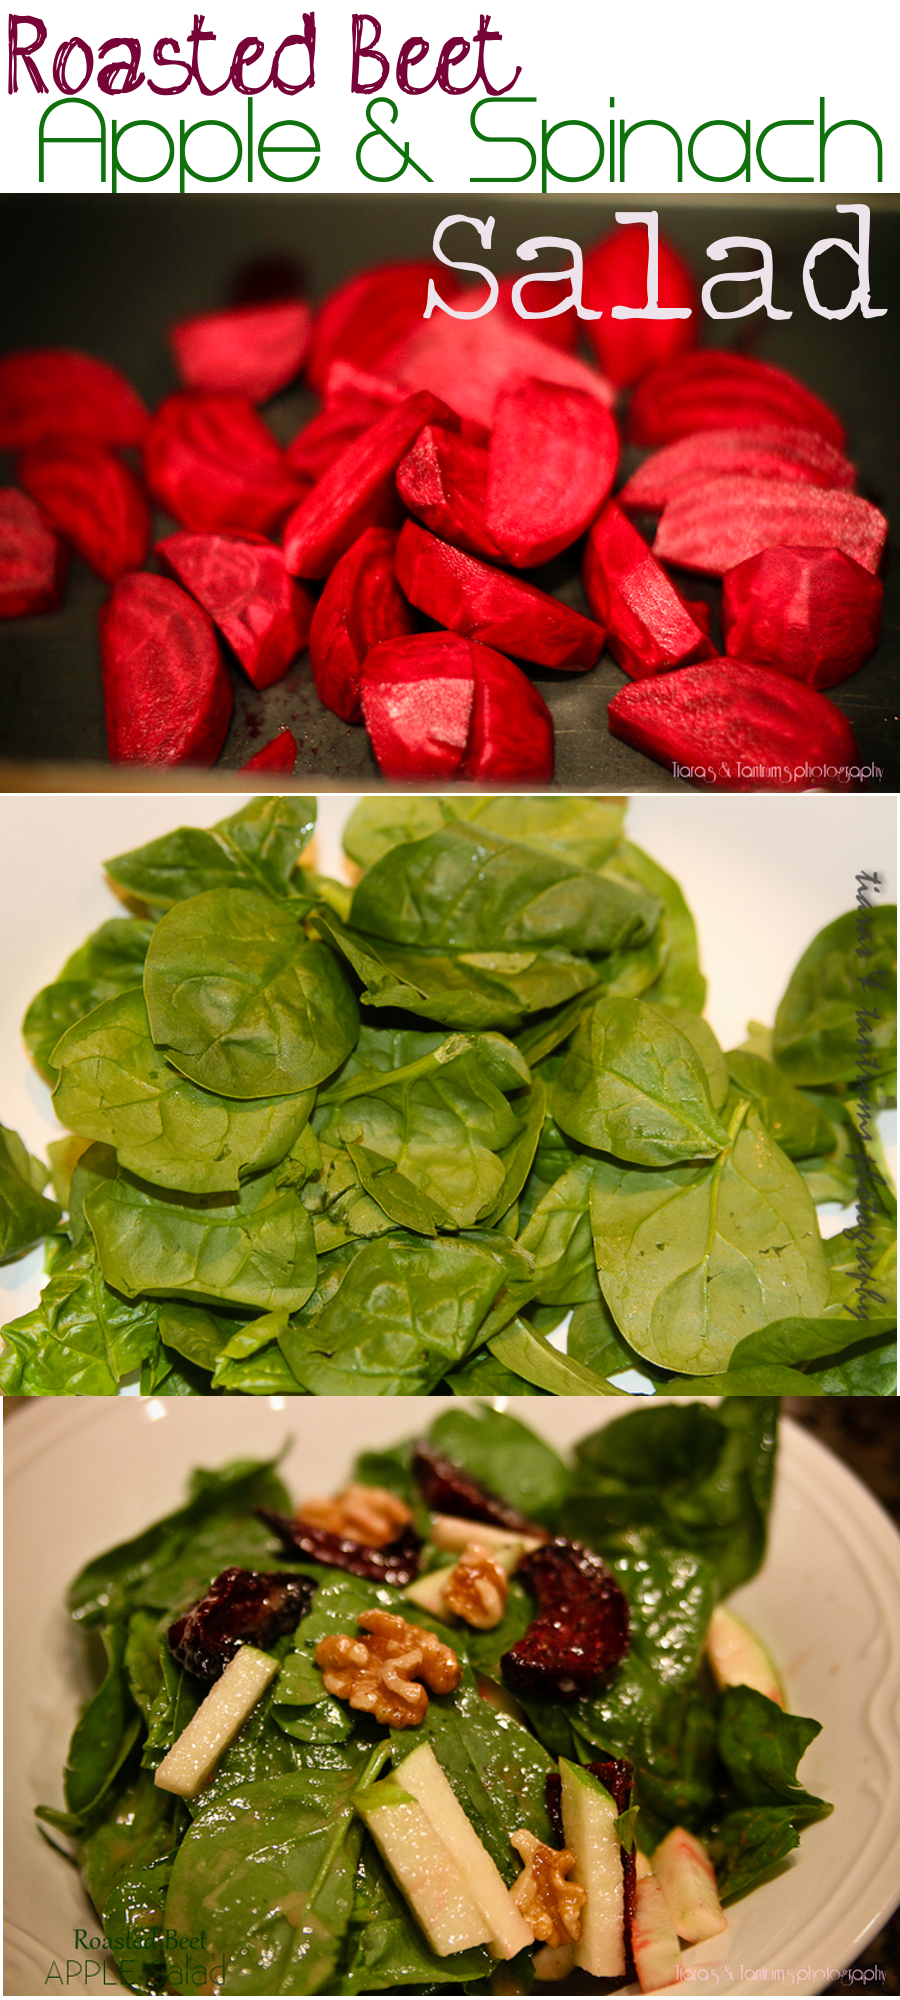 Roasted Beet Apple & Spinach Salad Recipe